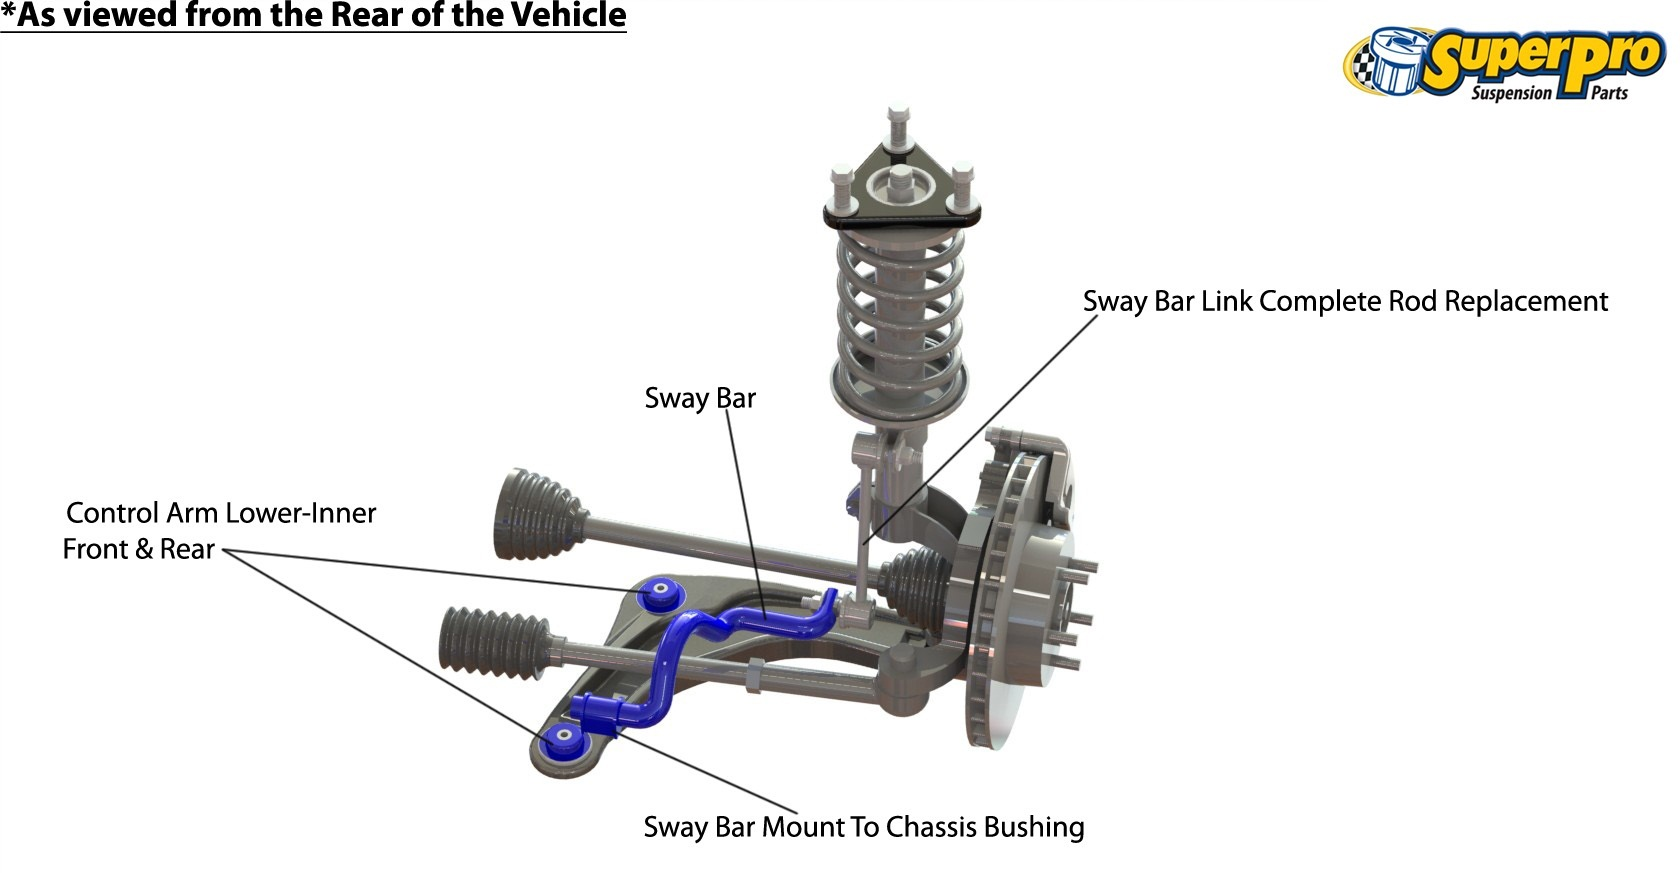 2001 honda crv parts diagram hyundai accent wiring front suspension seat